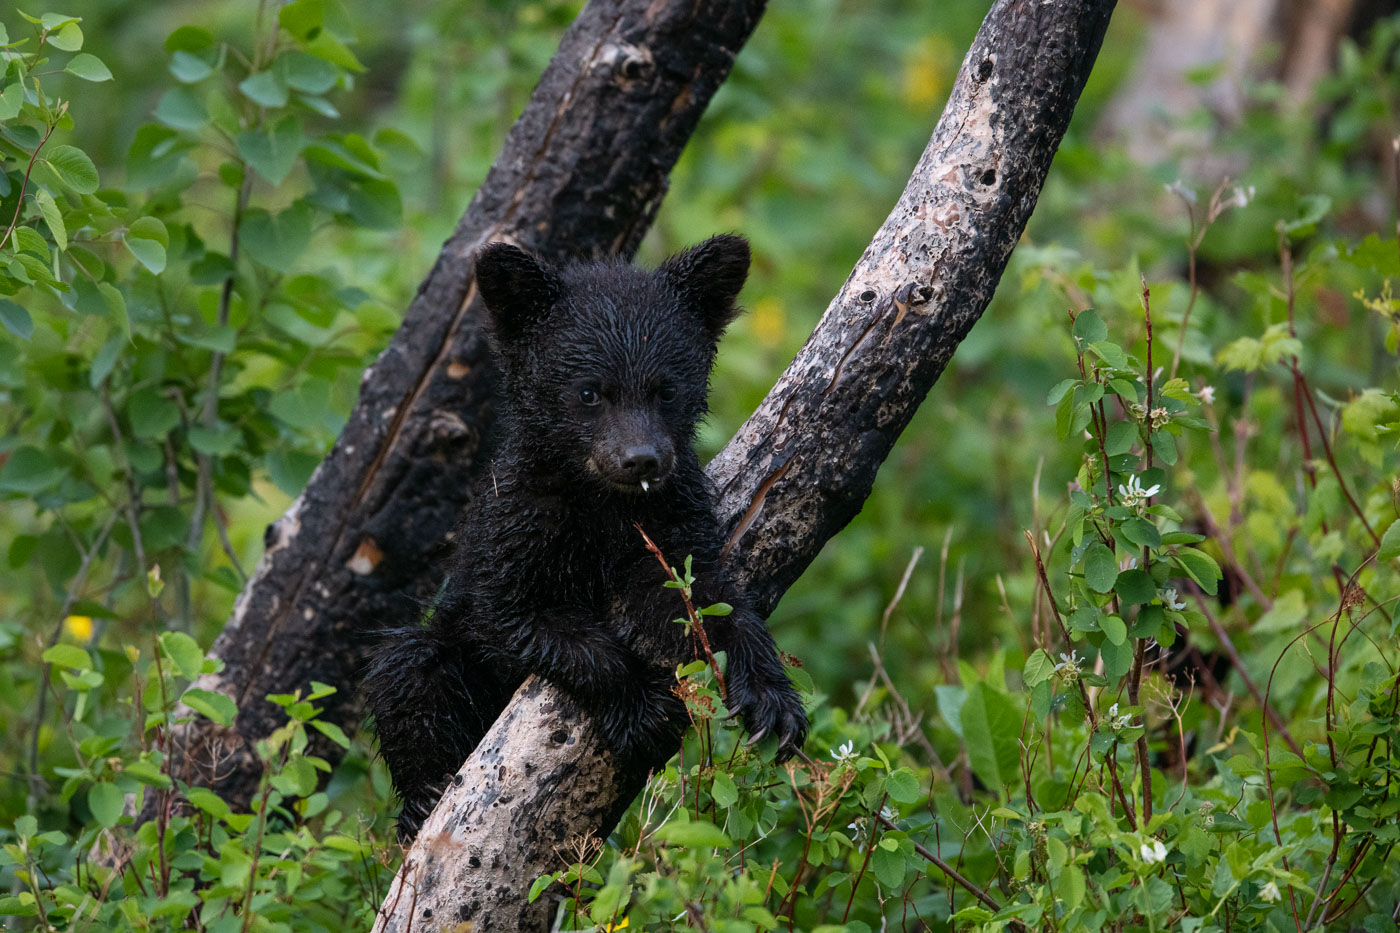 A black bear cub smiles with flowers sticking out of its mouth as it clings to a tree